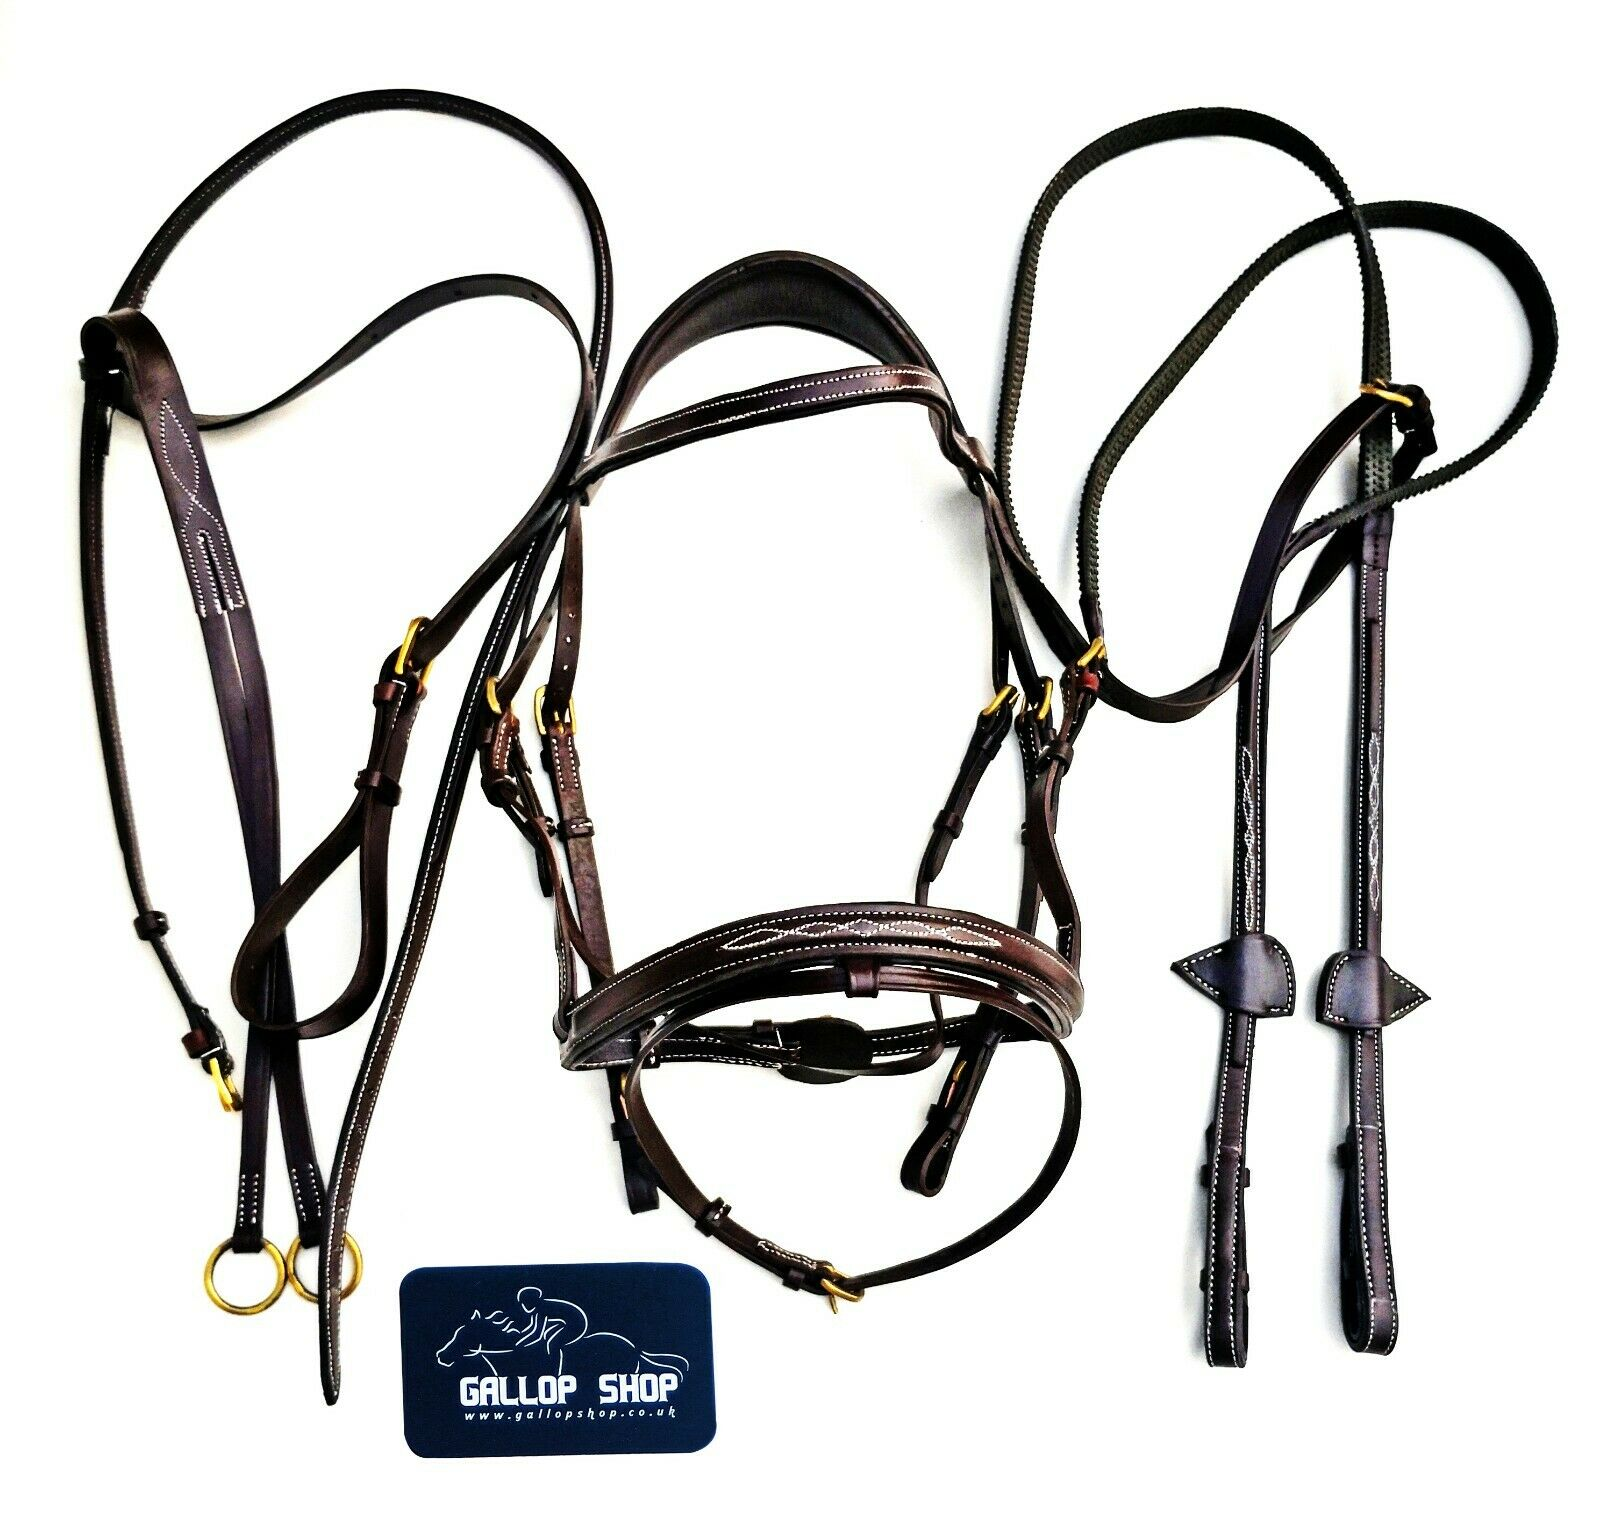 Horse Bridle  Cowhide Leather Padded Bridle Set Rubber Reins Leather Brest Plate  outlet online store